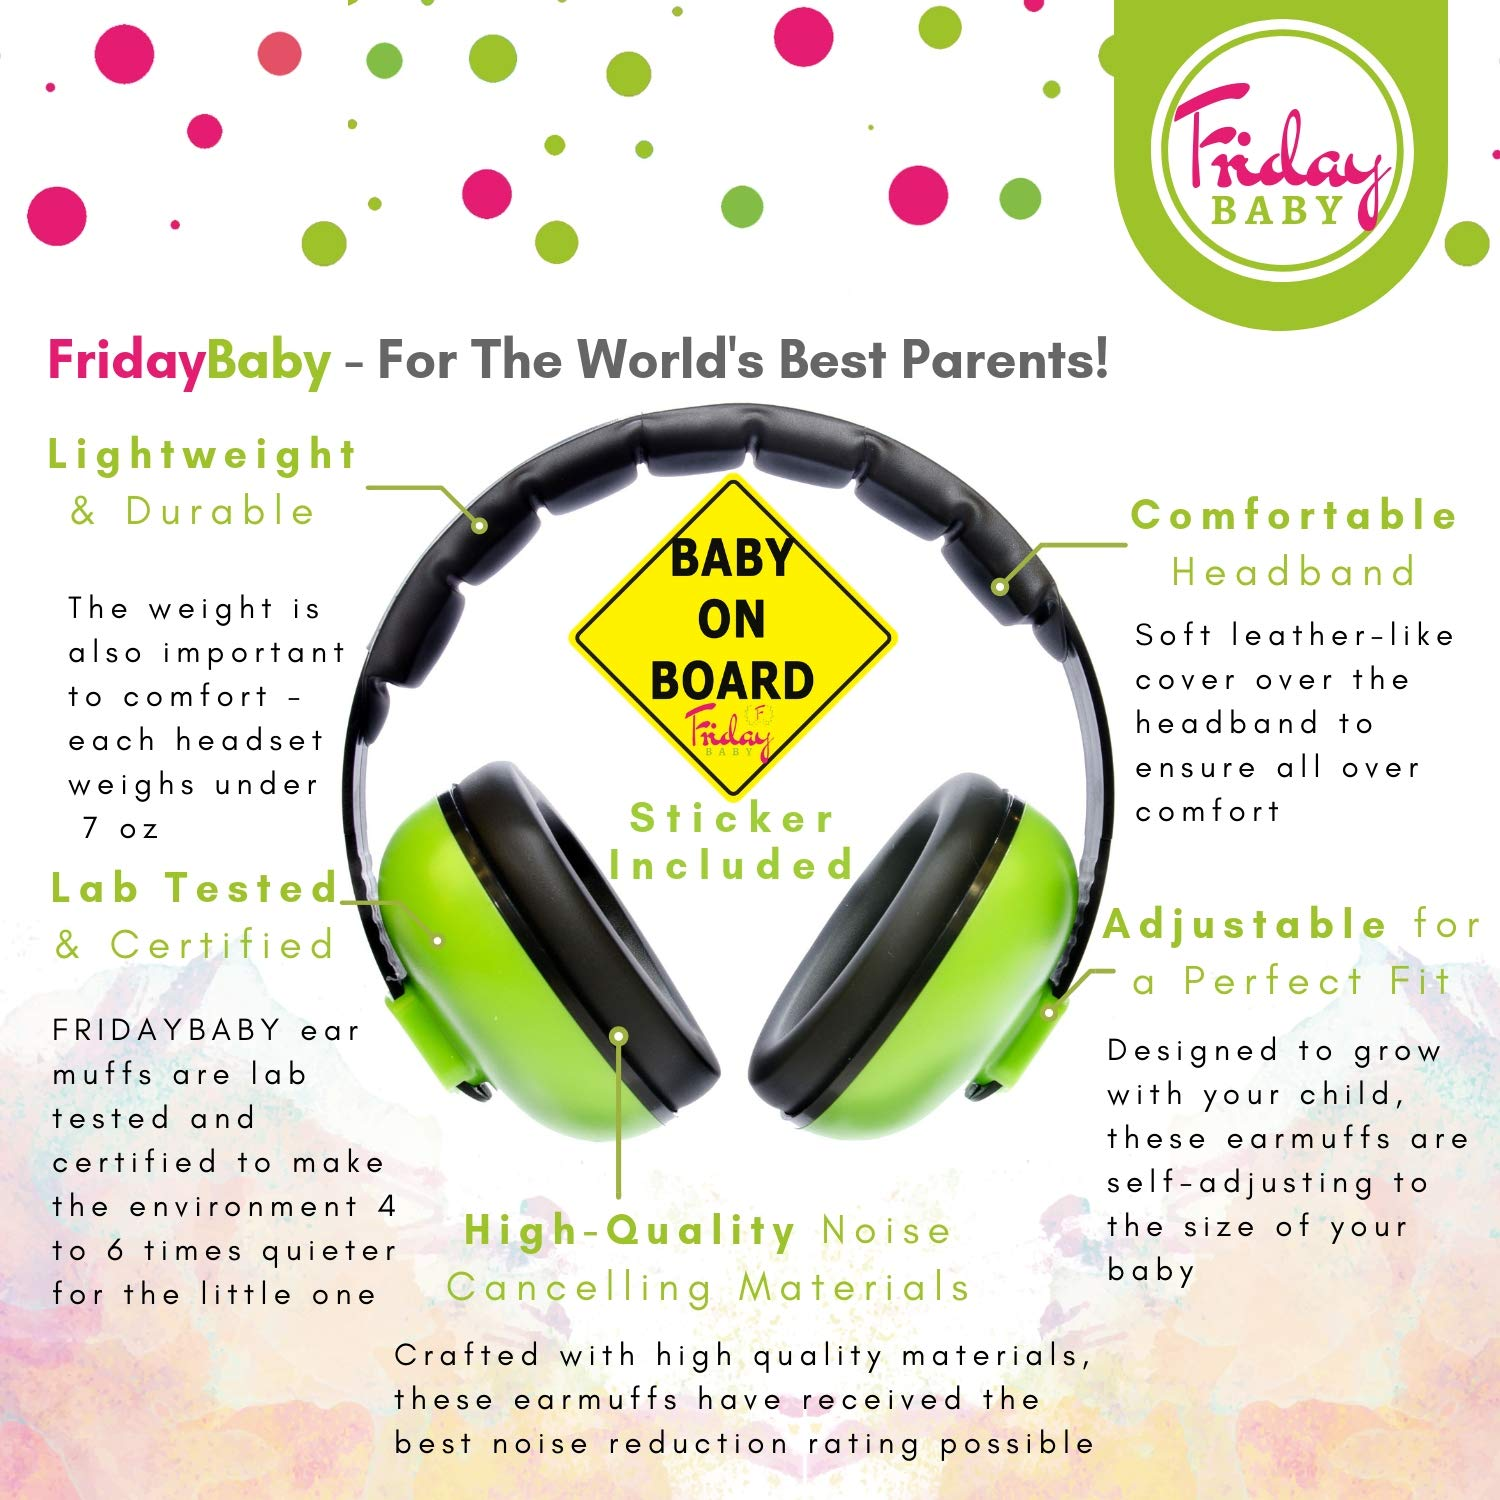 Baby Ear Protection - Comfortable and Adjustable Premium Noise Cancelling Headphones for Babies, Infants, Newborns (0-2+ Years) | Best Baby Headphones Noise Reduction for Concerts, Fireworks & Travels by Friday Baby (Image #1)